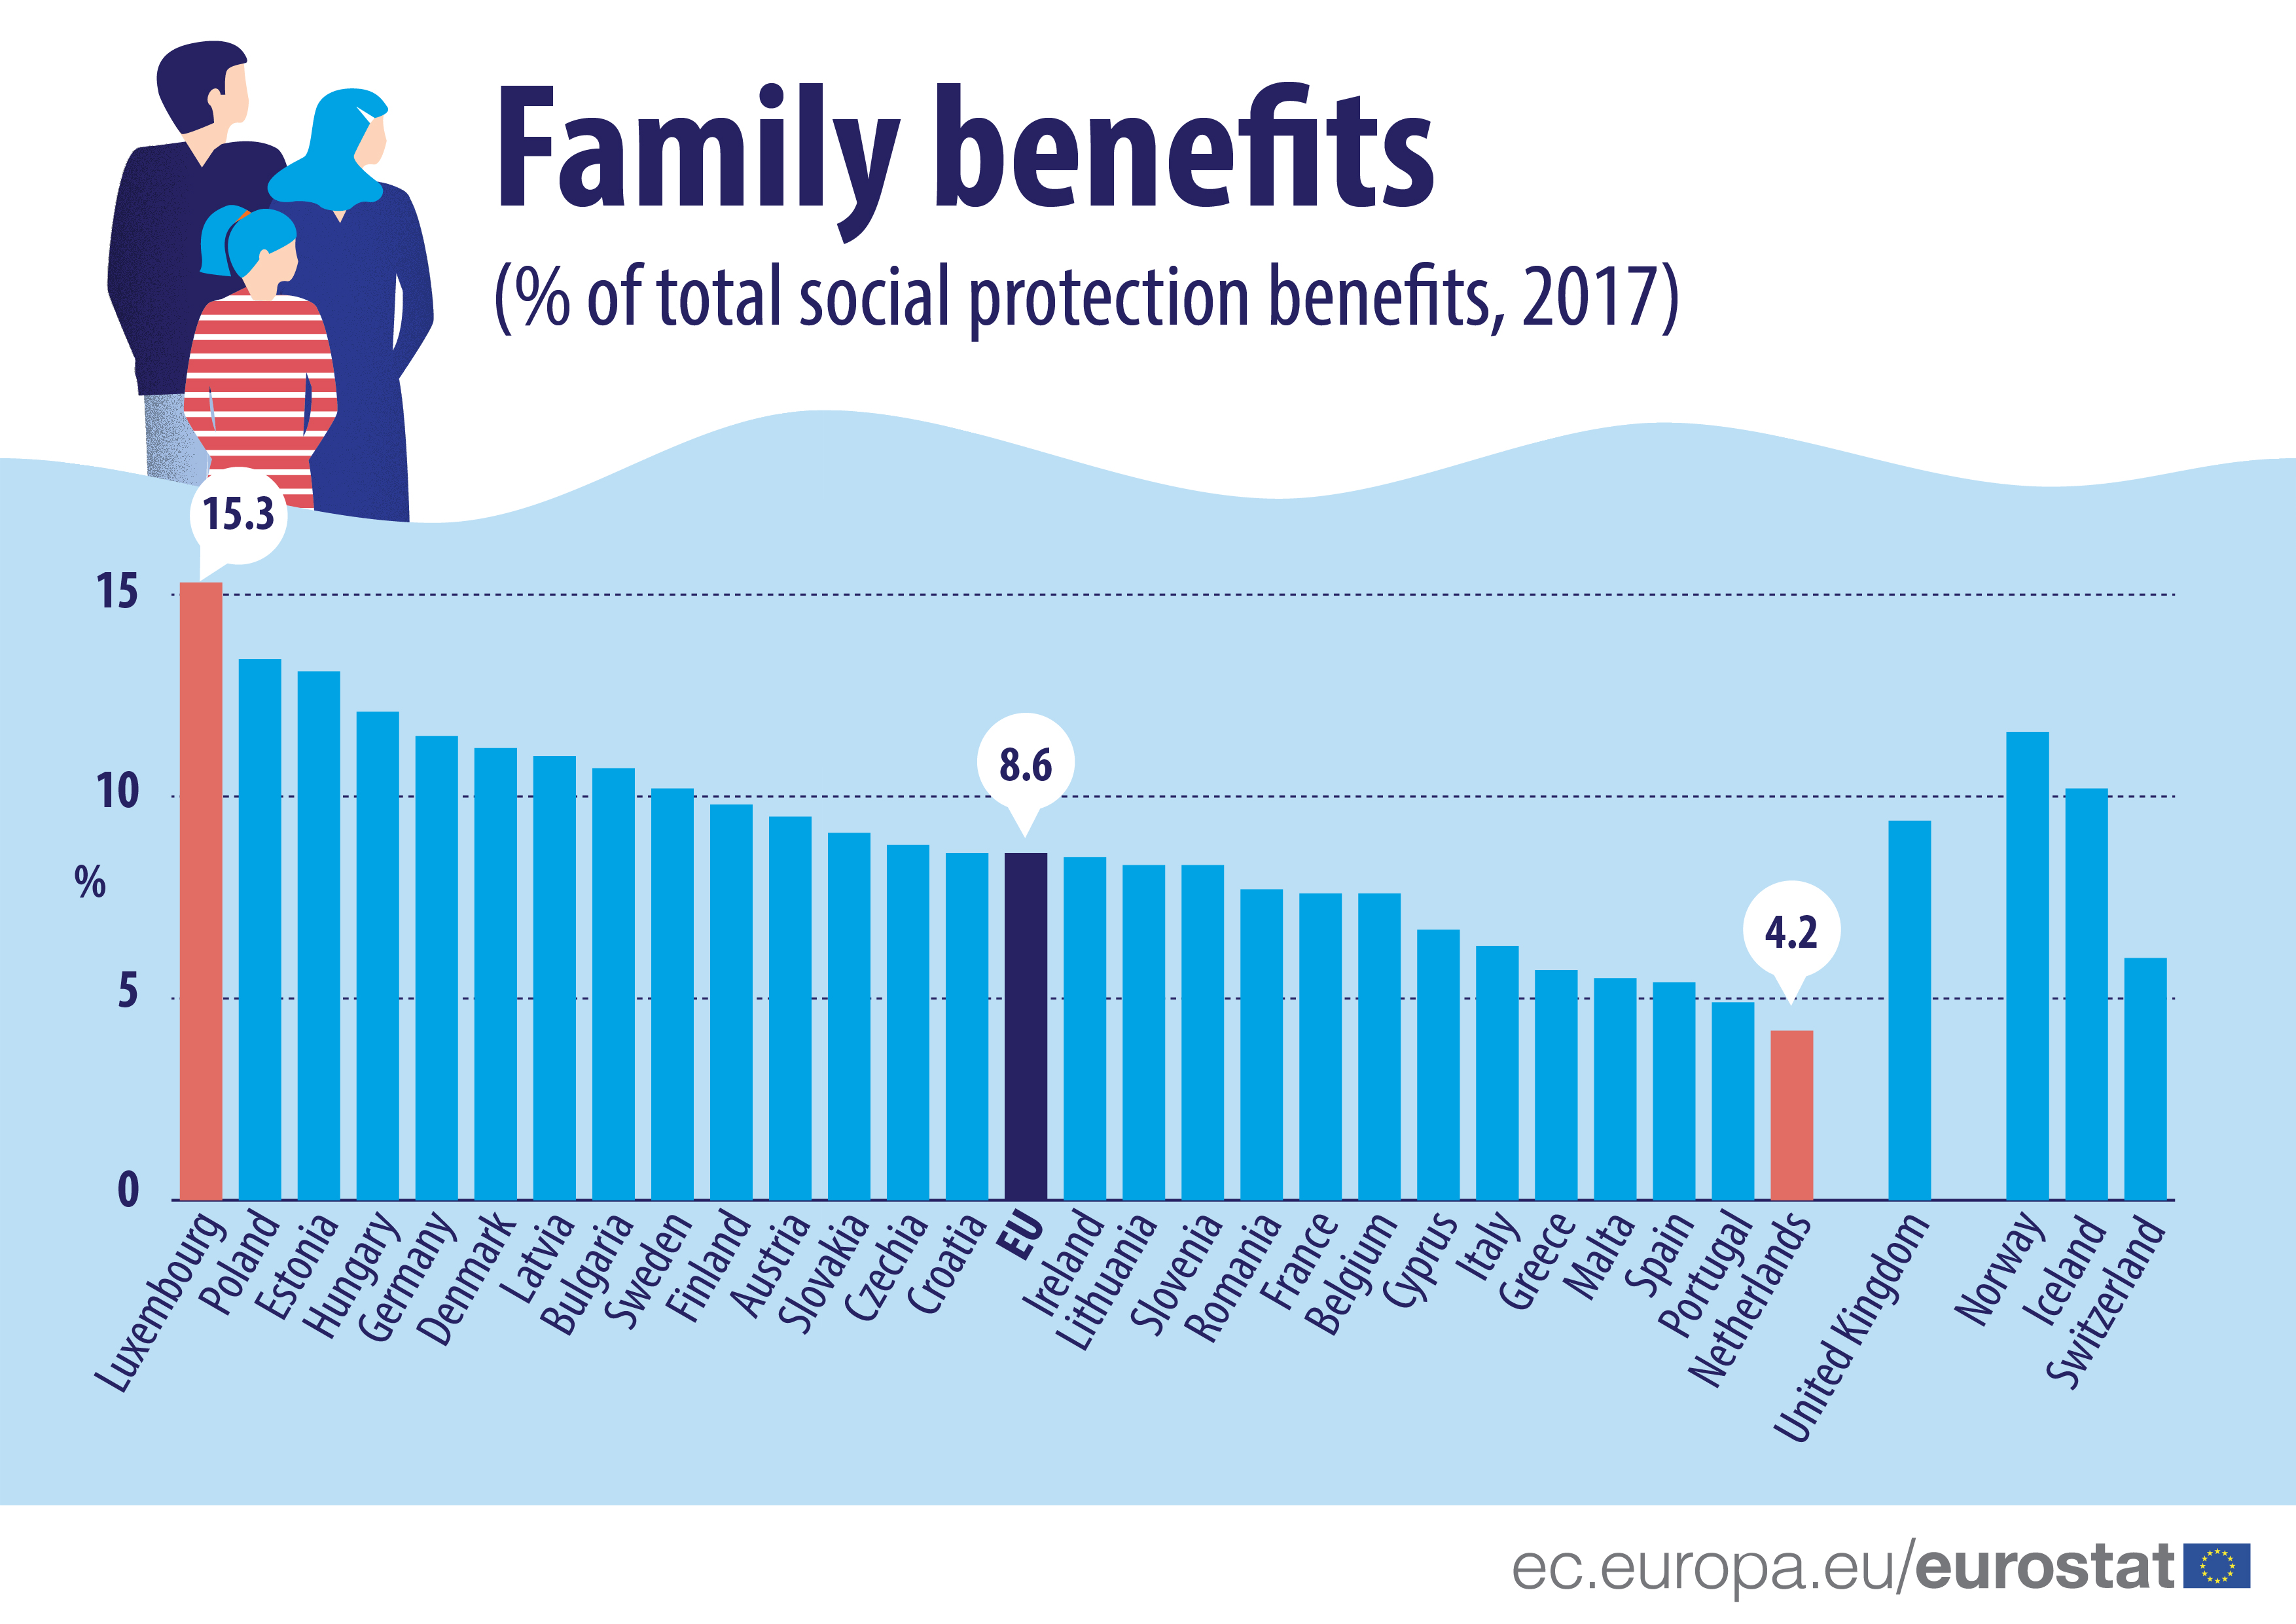 Family benefits (% of total social protection benefits, 2017)